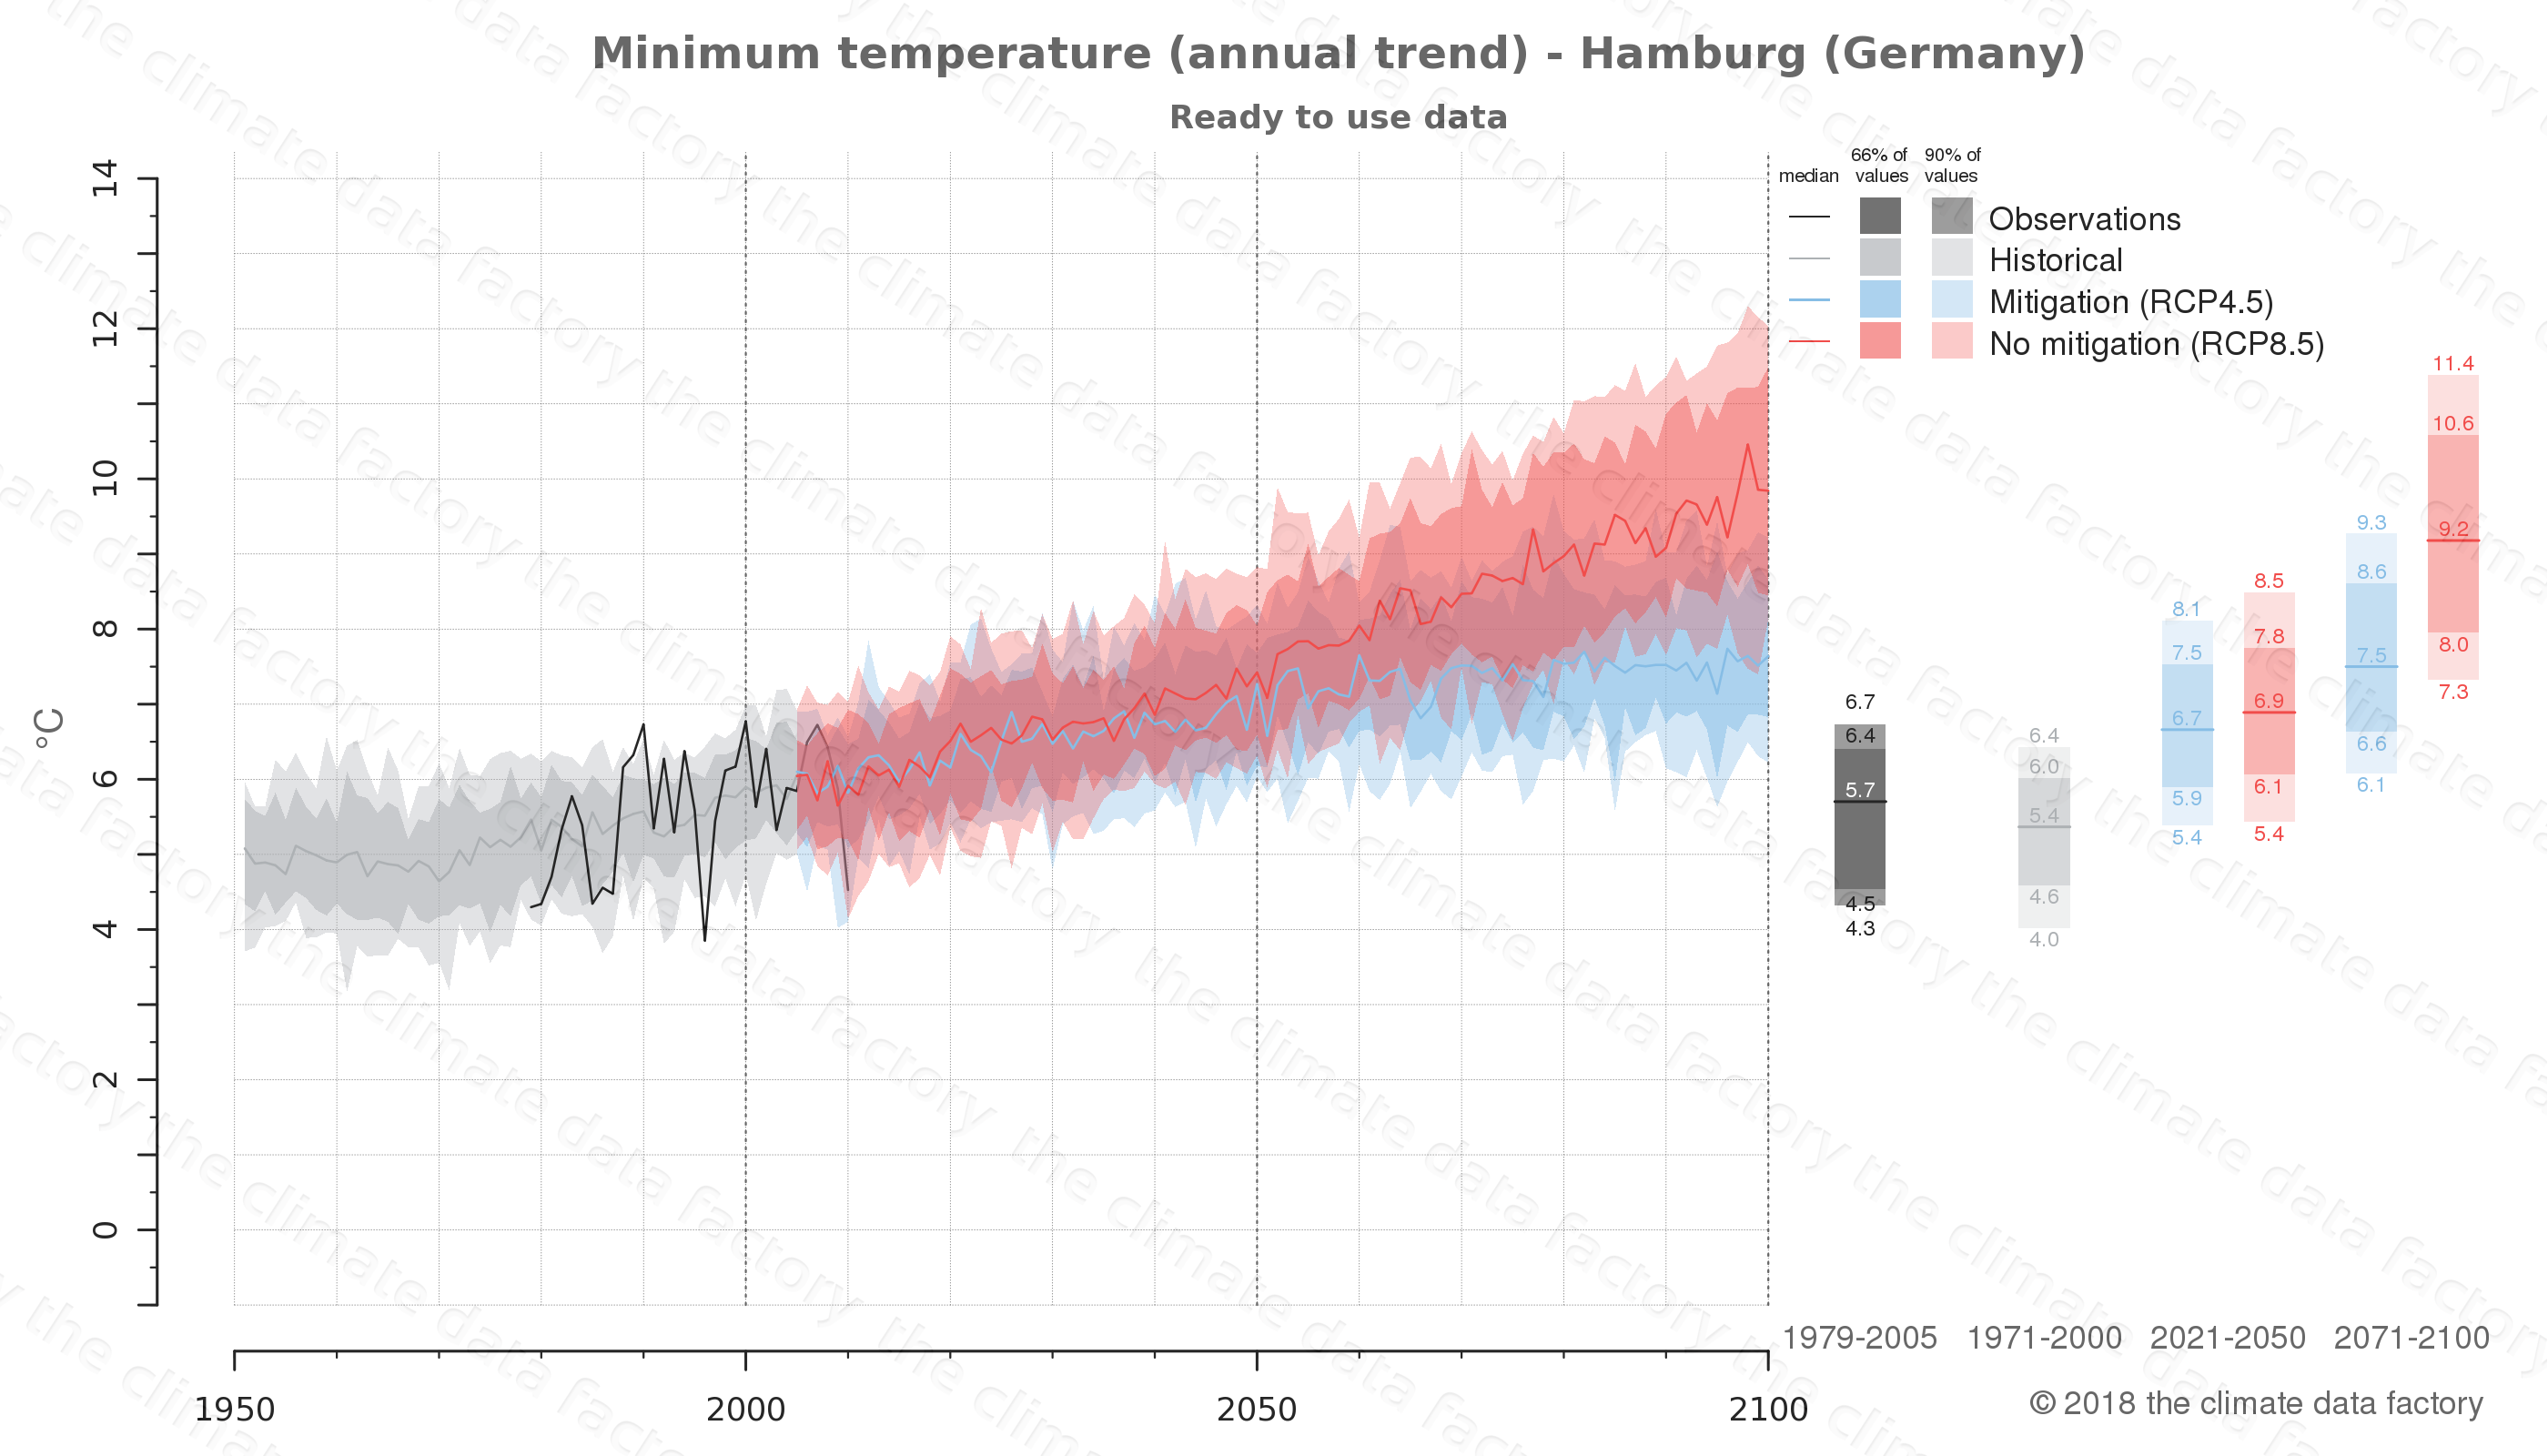 climate change data policy adaptation climate graph city data minimum-temperature hamburg germany